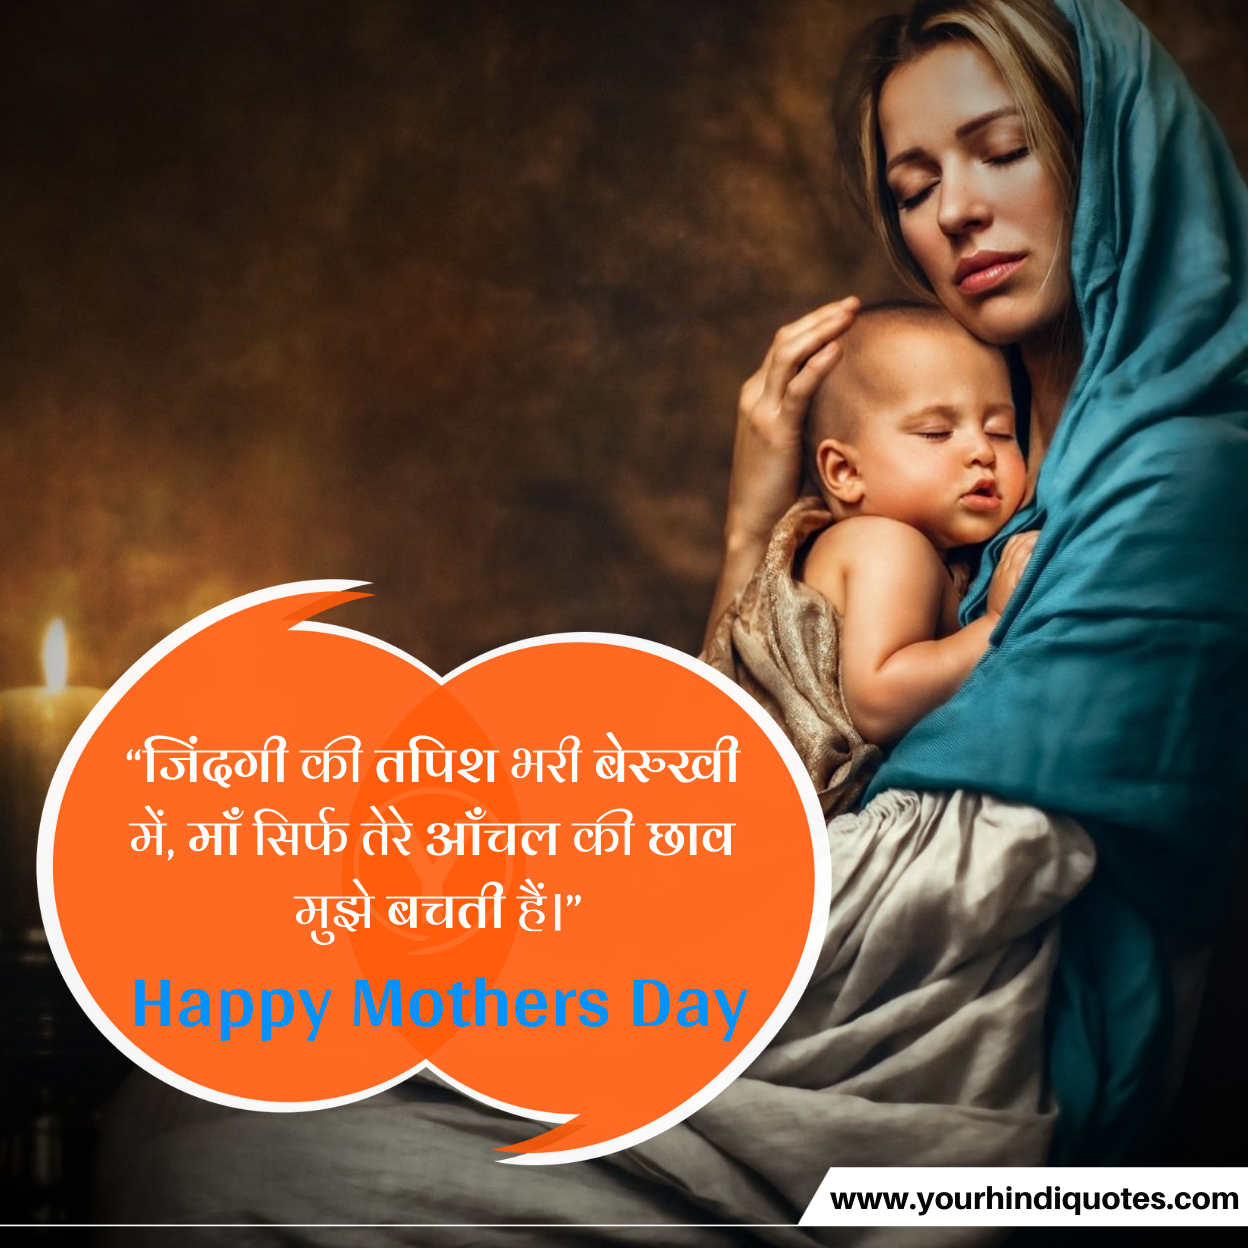 Mothers Day Quotes Hindi Images